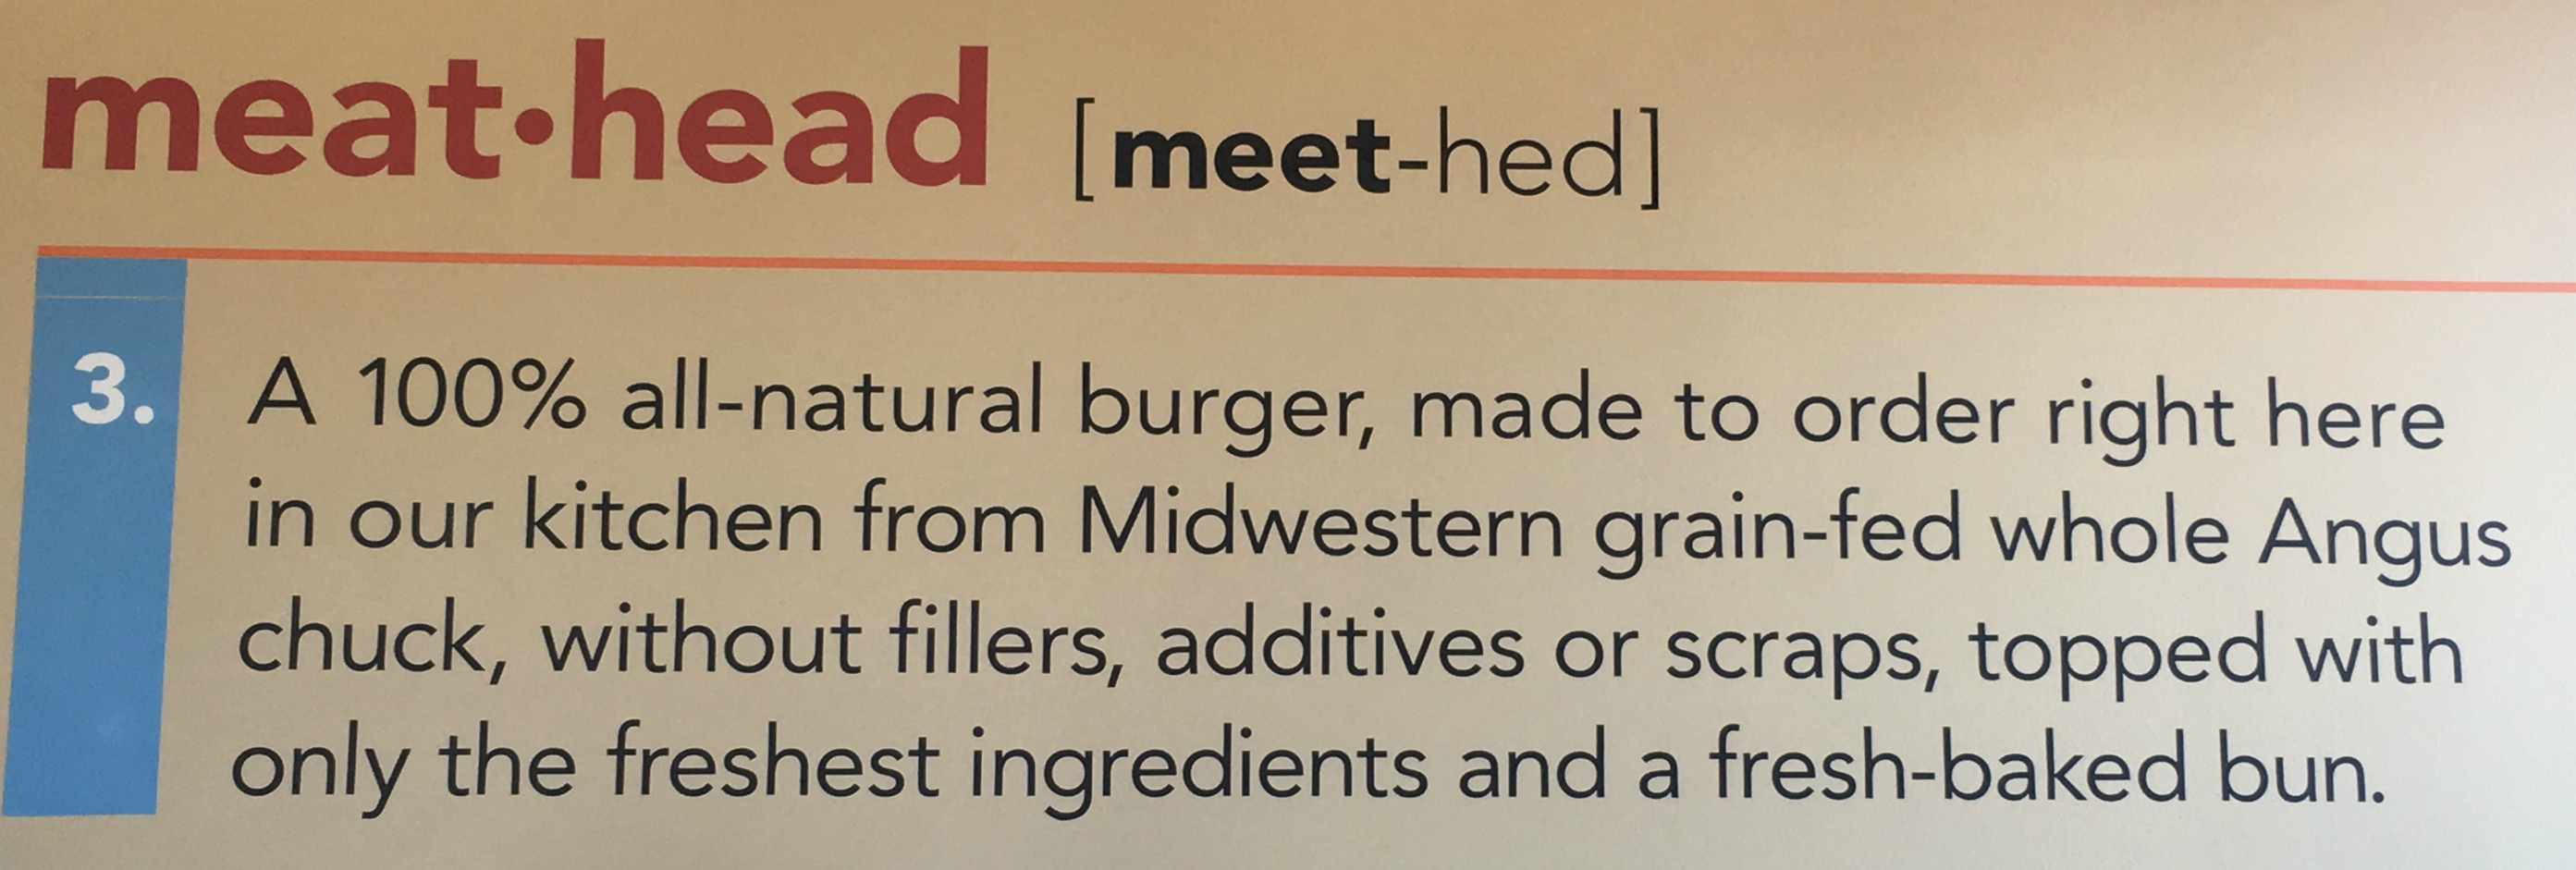 Fresh Made To Order Burgers At Meatheads